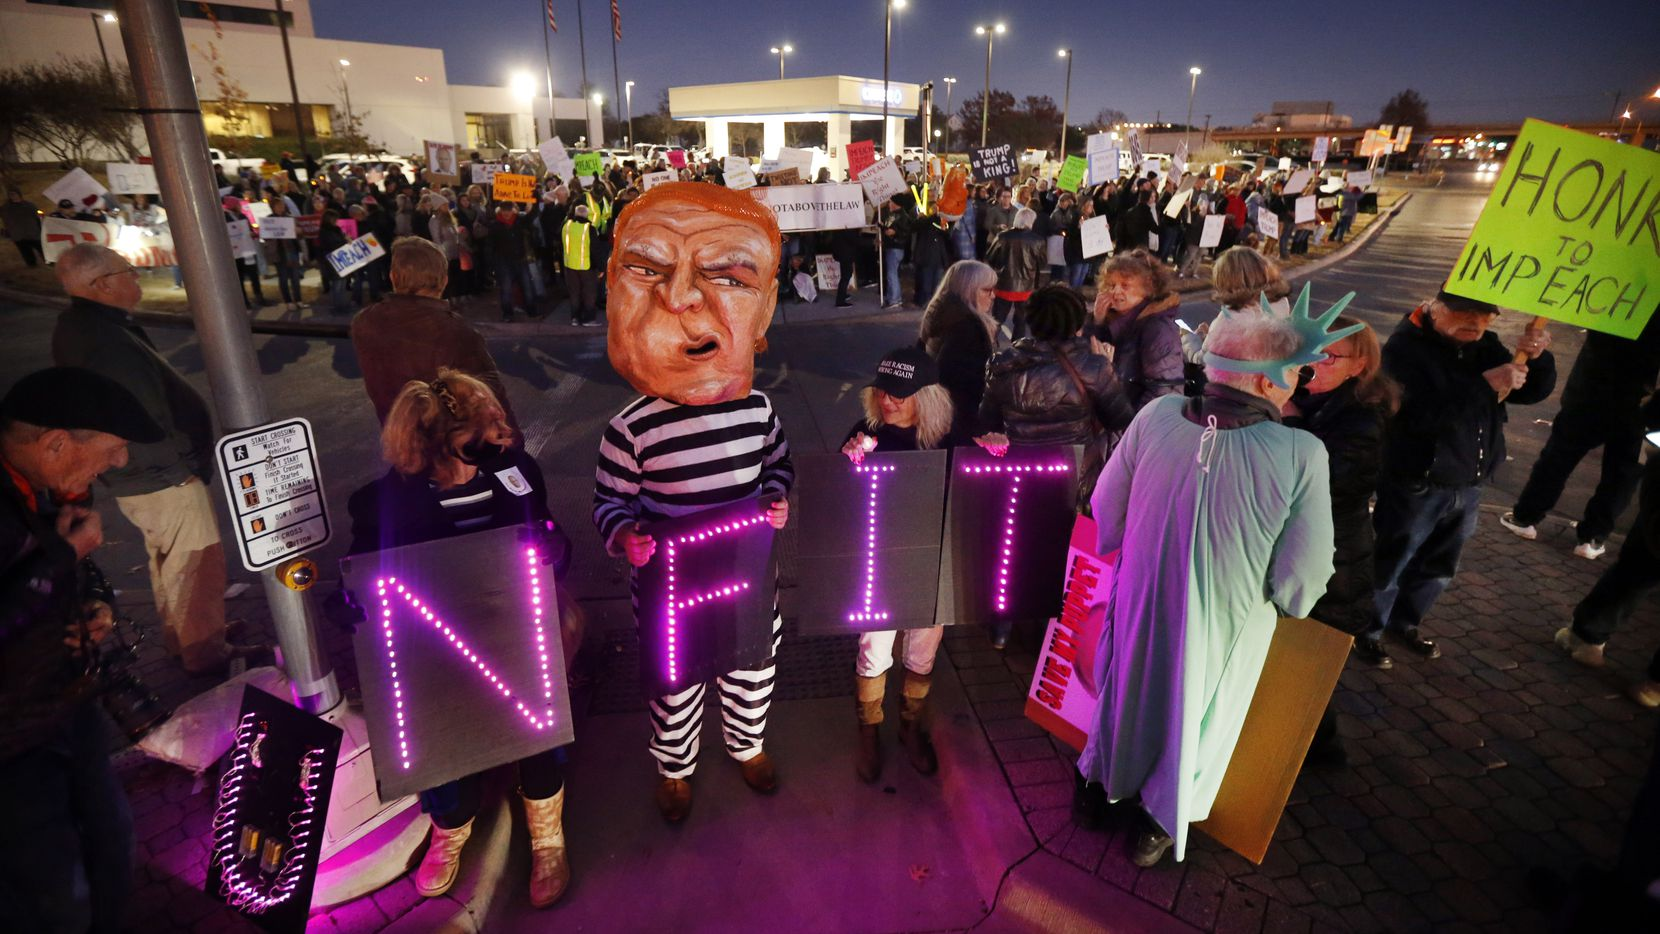 Supporters of U.S. Representative Colin Allred gathered outside his Richardson, Texas office at the intersection of Belt Line Rd and Central Expressway to show their support of President Donald Trump's impeachment, Tuesday evening, December 17, 2019.